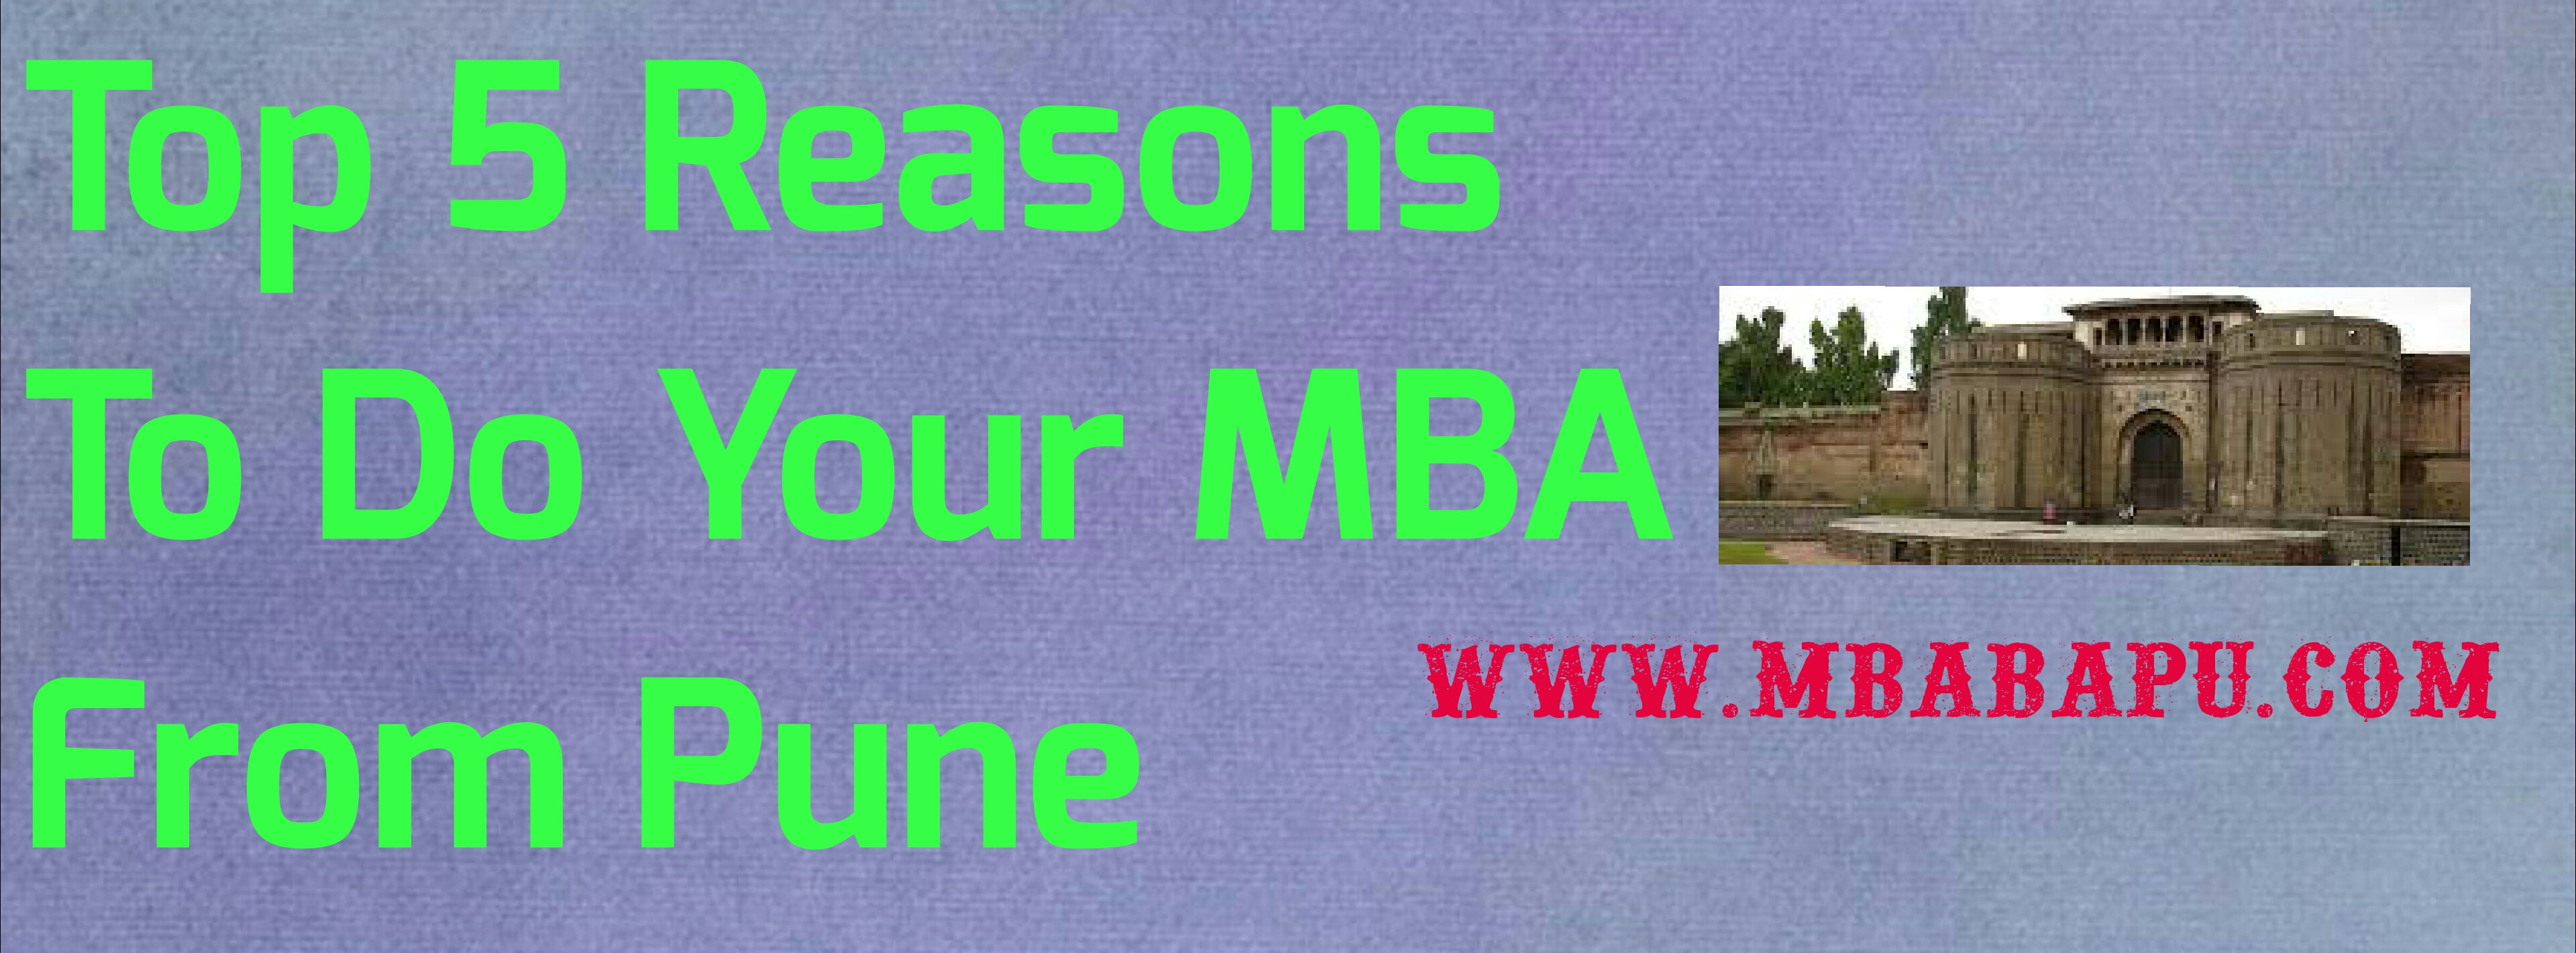 Top 5 Reasons to do your MBA from Pune